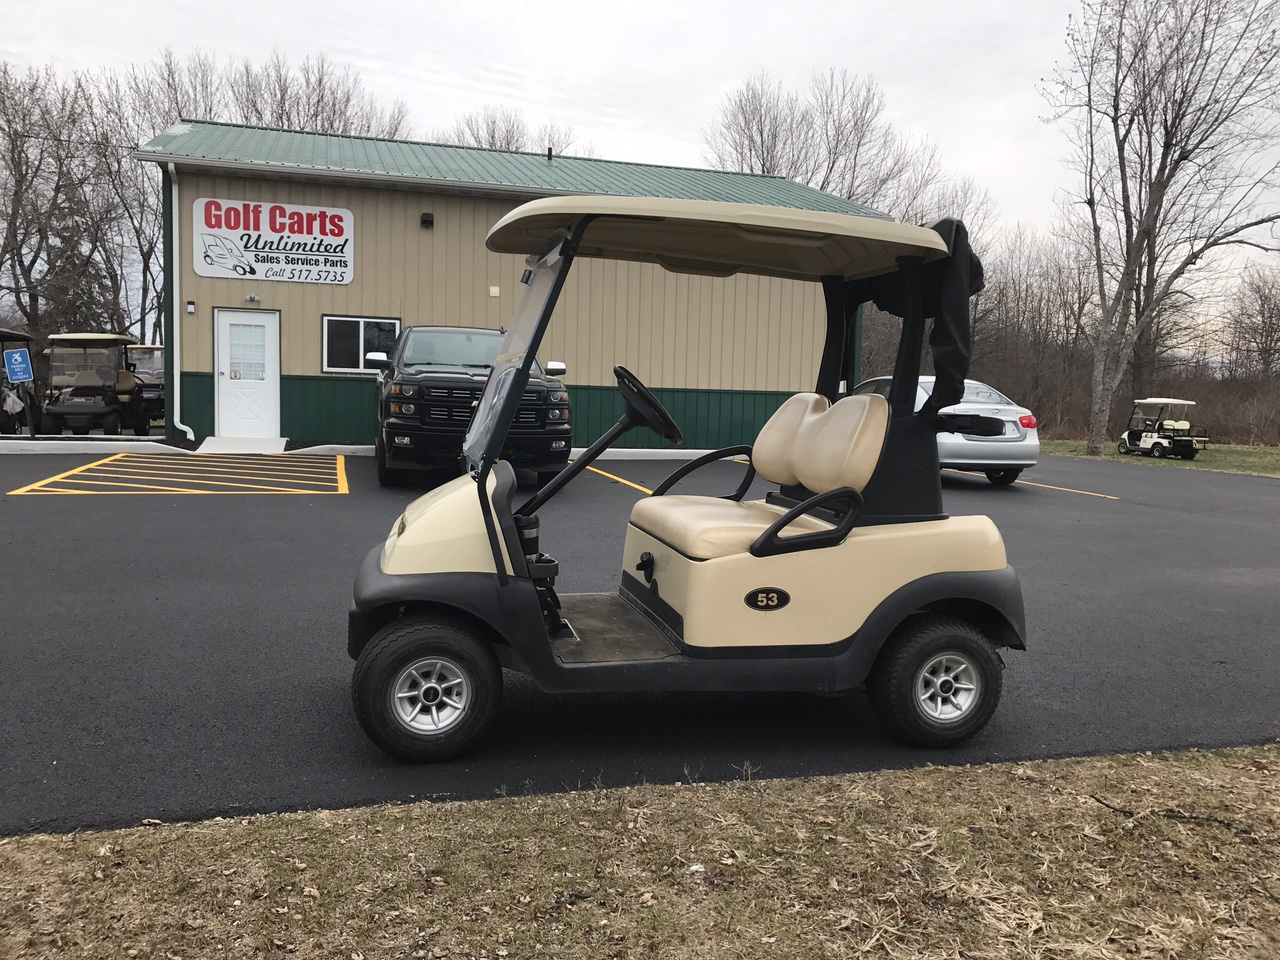 Golf Carts For Sale | Golf Carts Unlimited on electric work carts, electric club car wiring diagram, electric vehicles carts, electric club car villager 4, electric tow carts, electric boat, electric club car batteries, electric enclosures, electric golf cart parts, electric club car repair, electric golf cart batteries, electric club car ds model, electric golf cart passengers, electric utility carts, electric golf cart battery prices, electric golf cart 6 seater, electric golf cart blue,